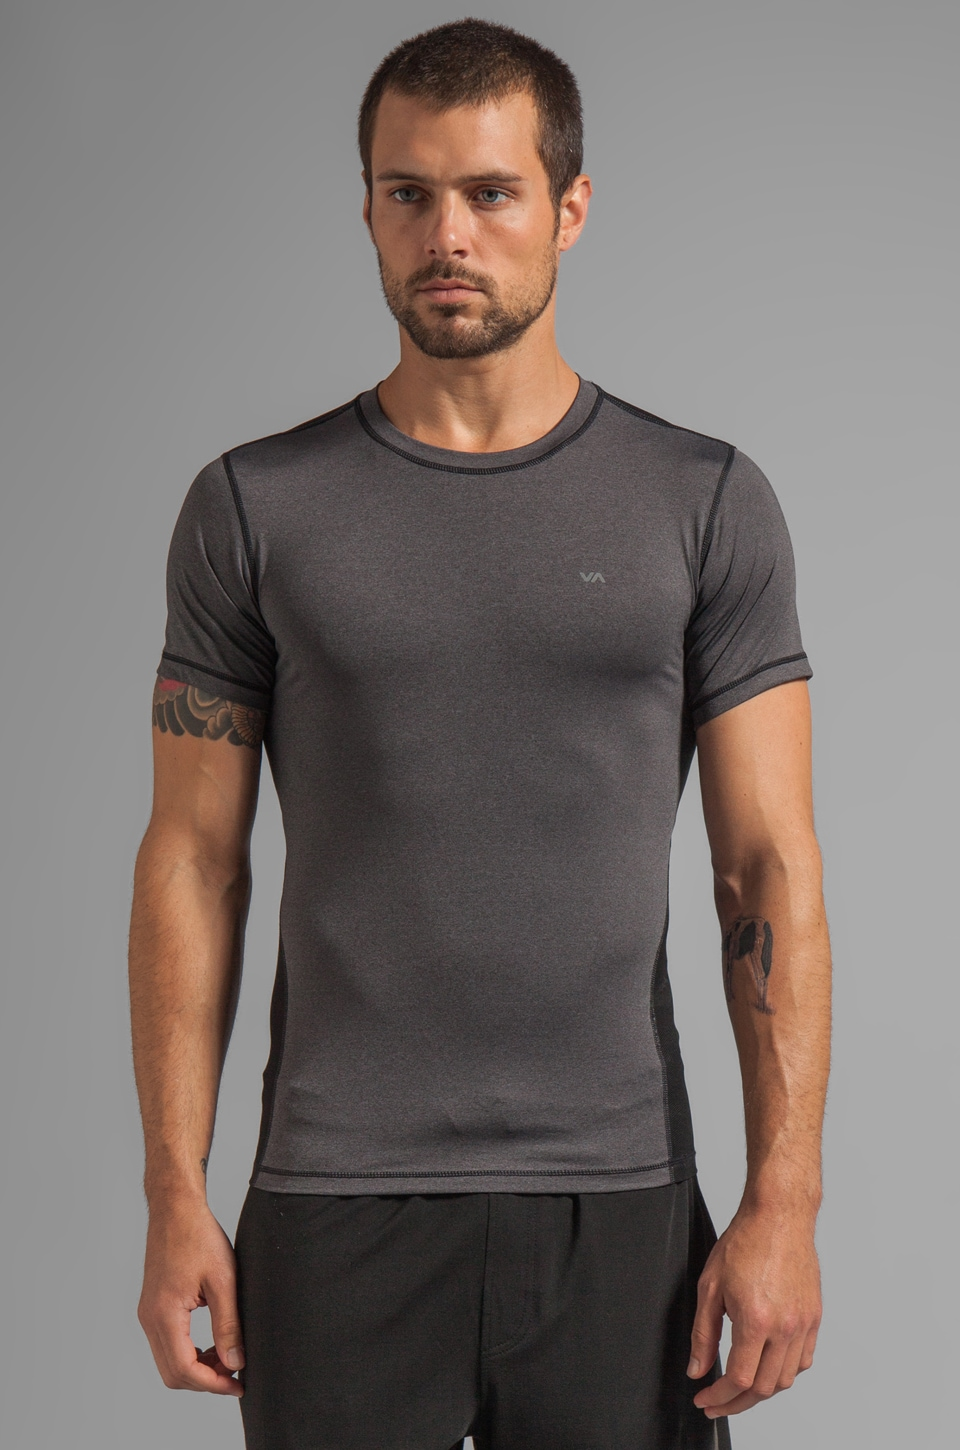 RVCA VA Sport Pressure Short Sleeve Crew Tee in Dark Charcoal Heather